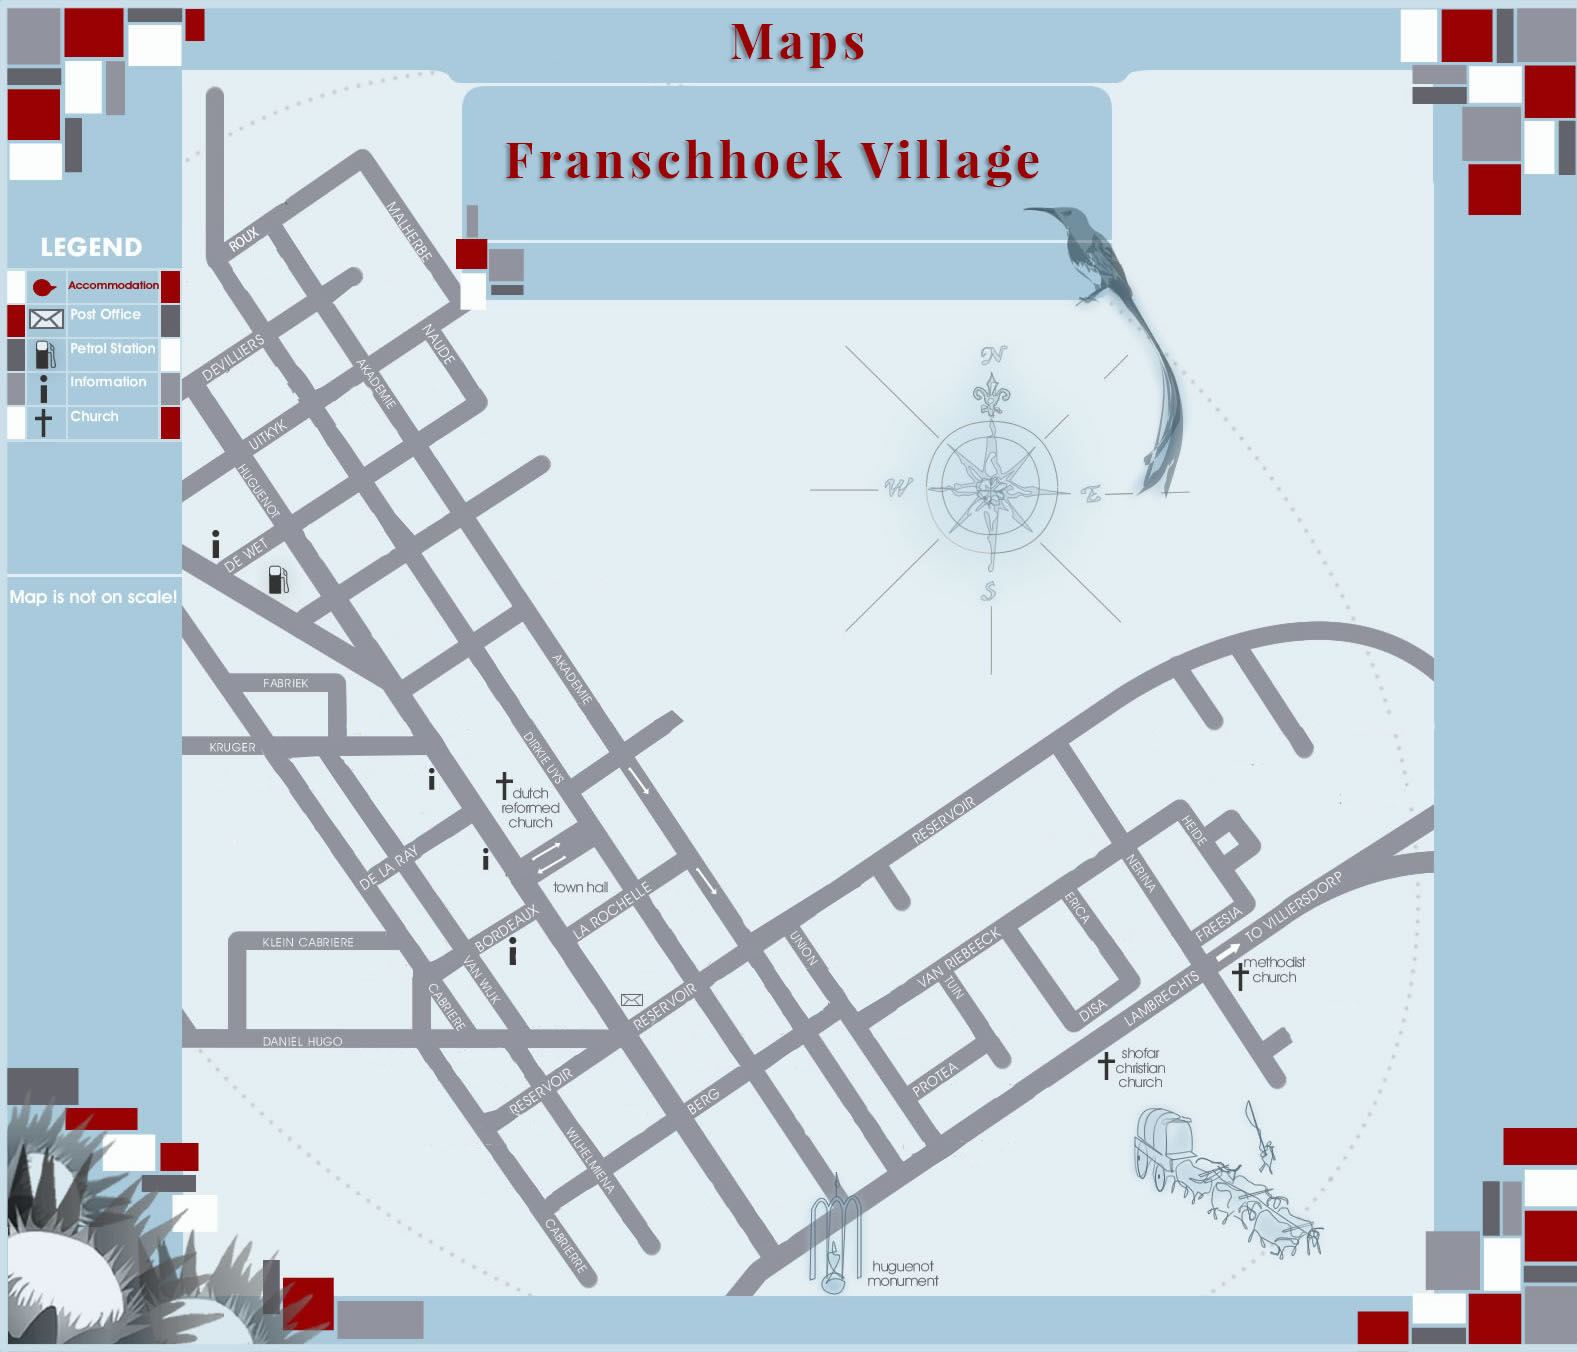 Franschhoek Village Map on